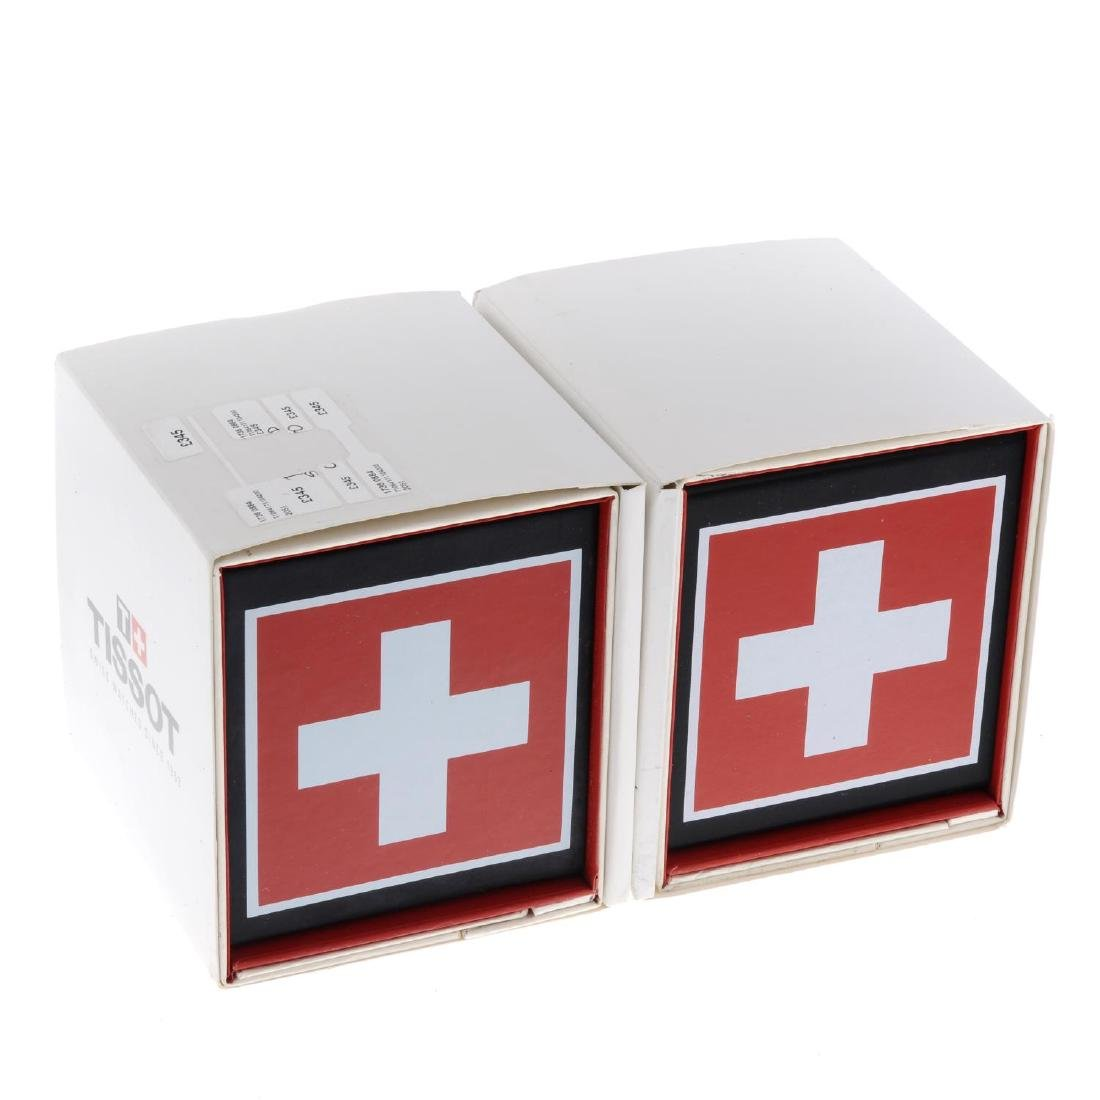 A large selection of various watch boxes, to include